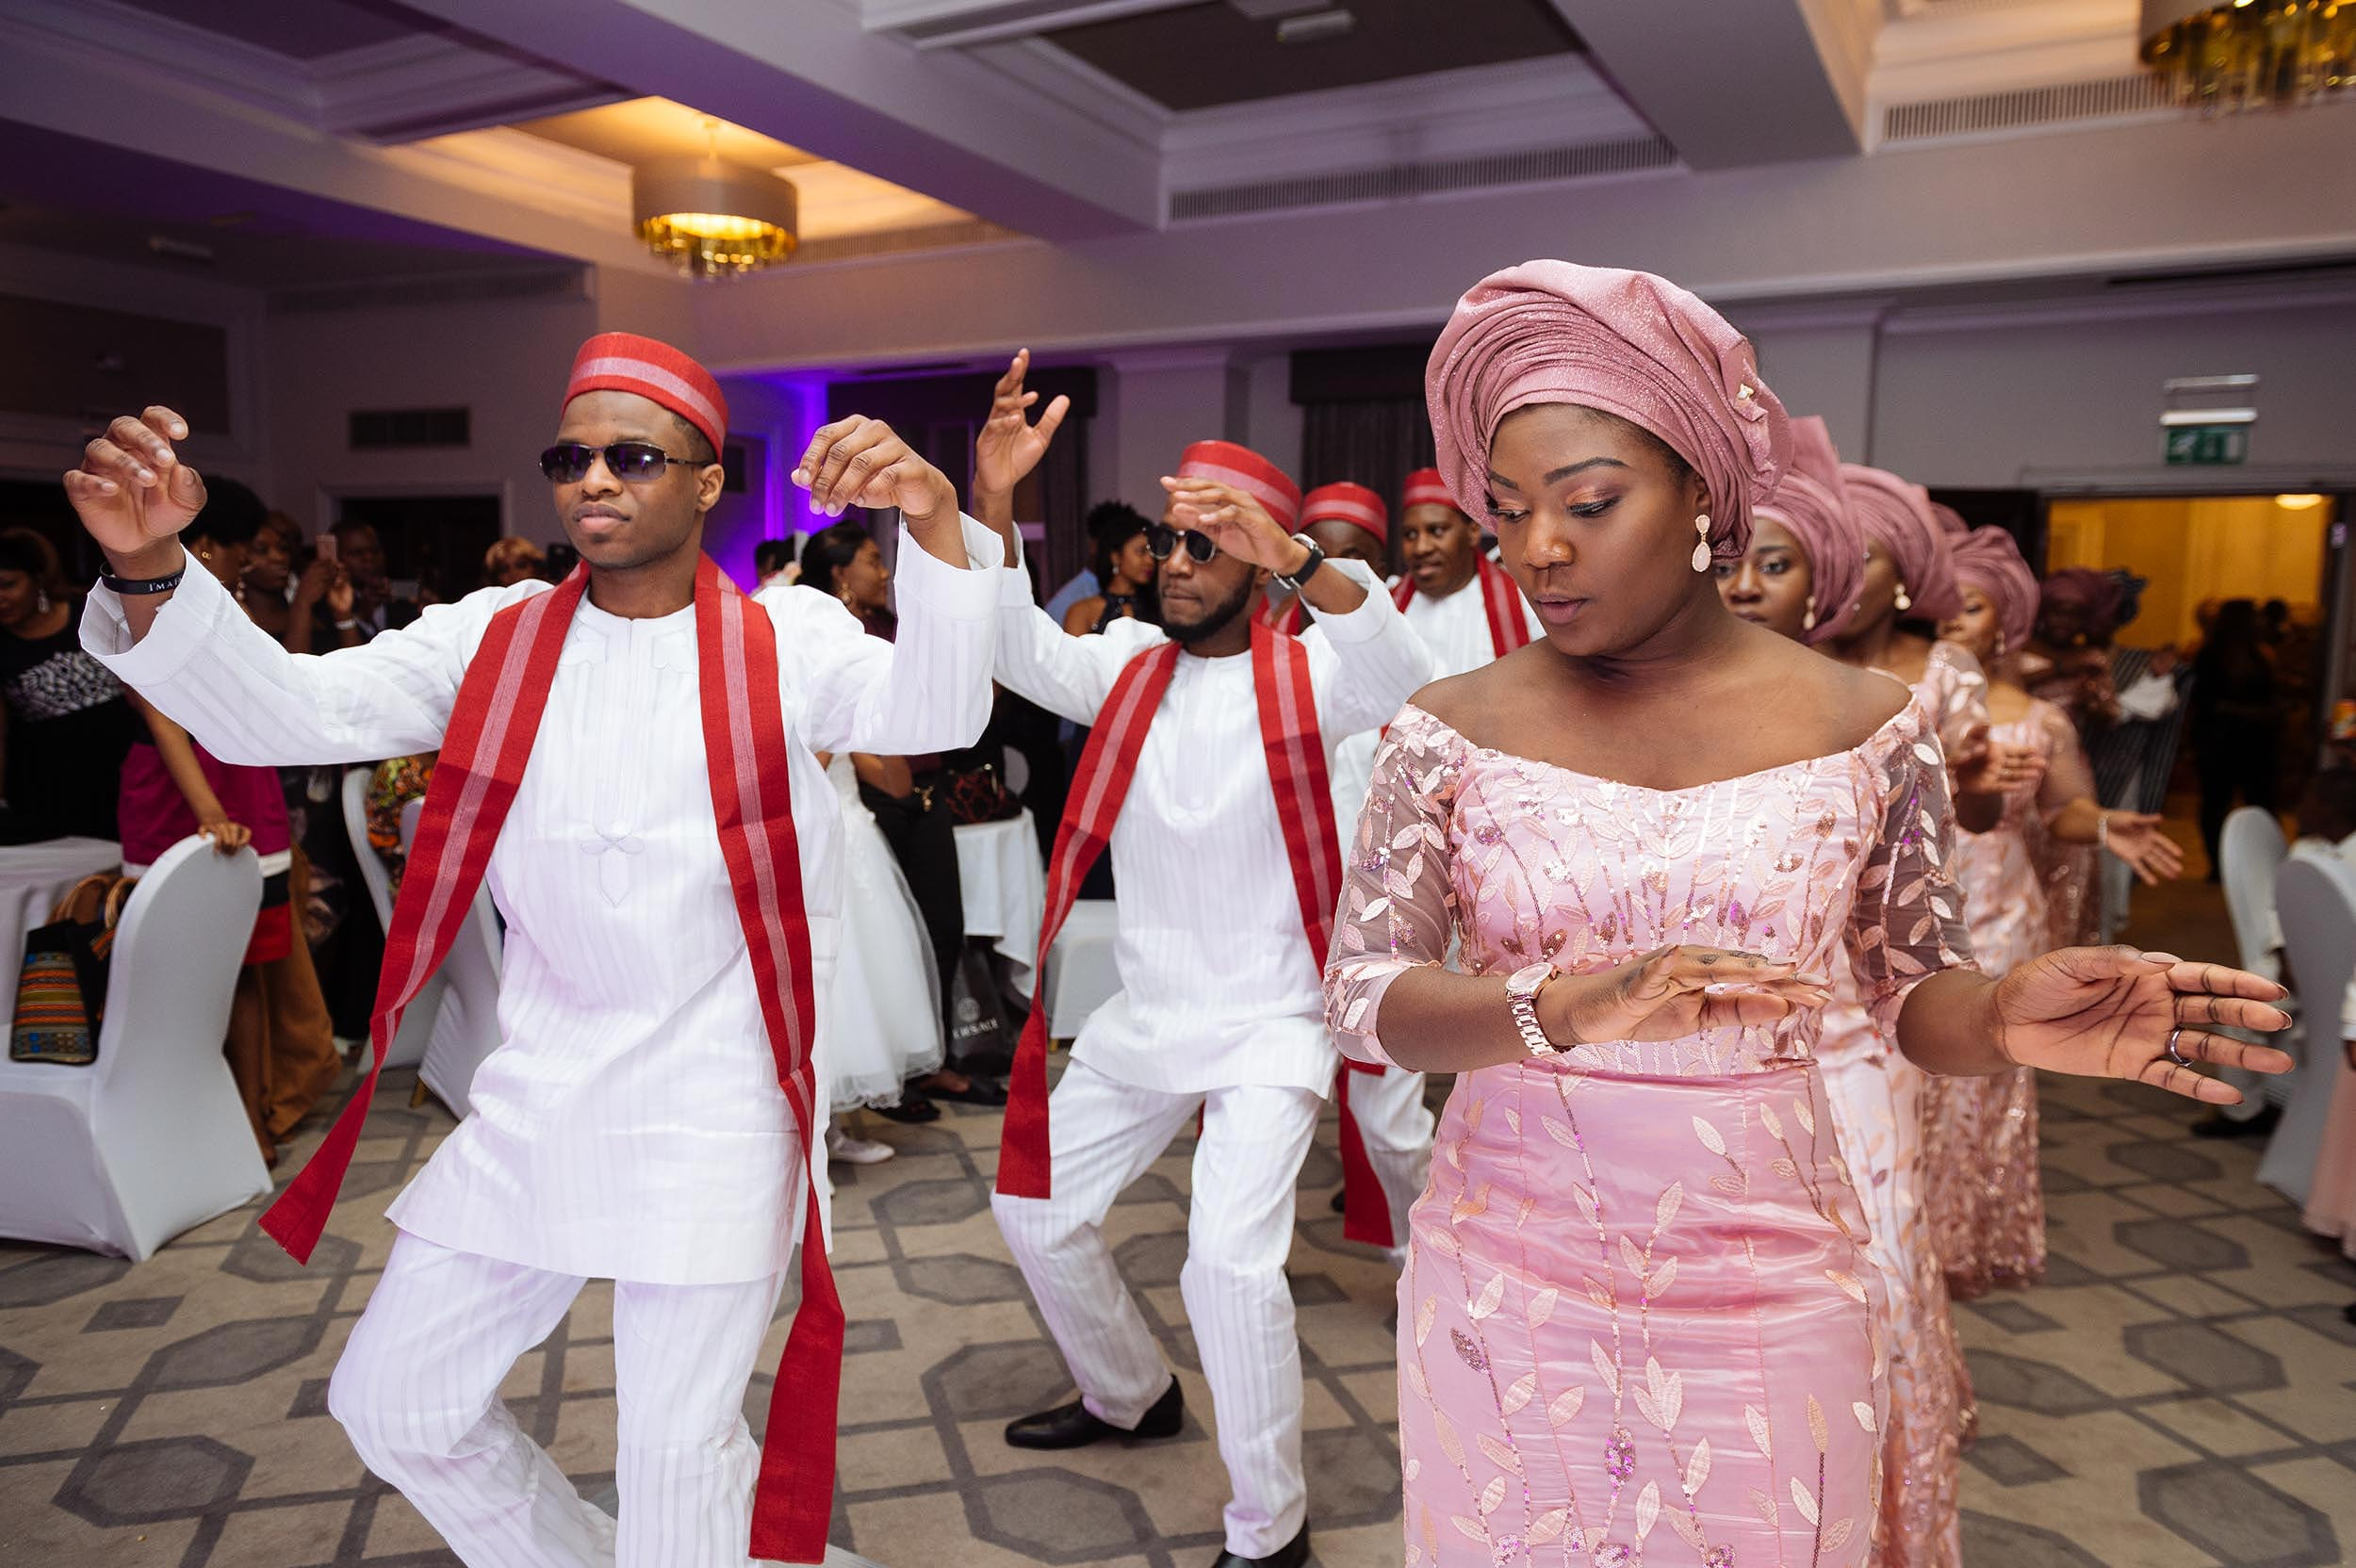 bridal-party-entrance-dancing-grand-connaught-rooms-london-reception-venue-african-wedding-photographer